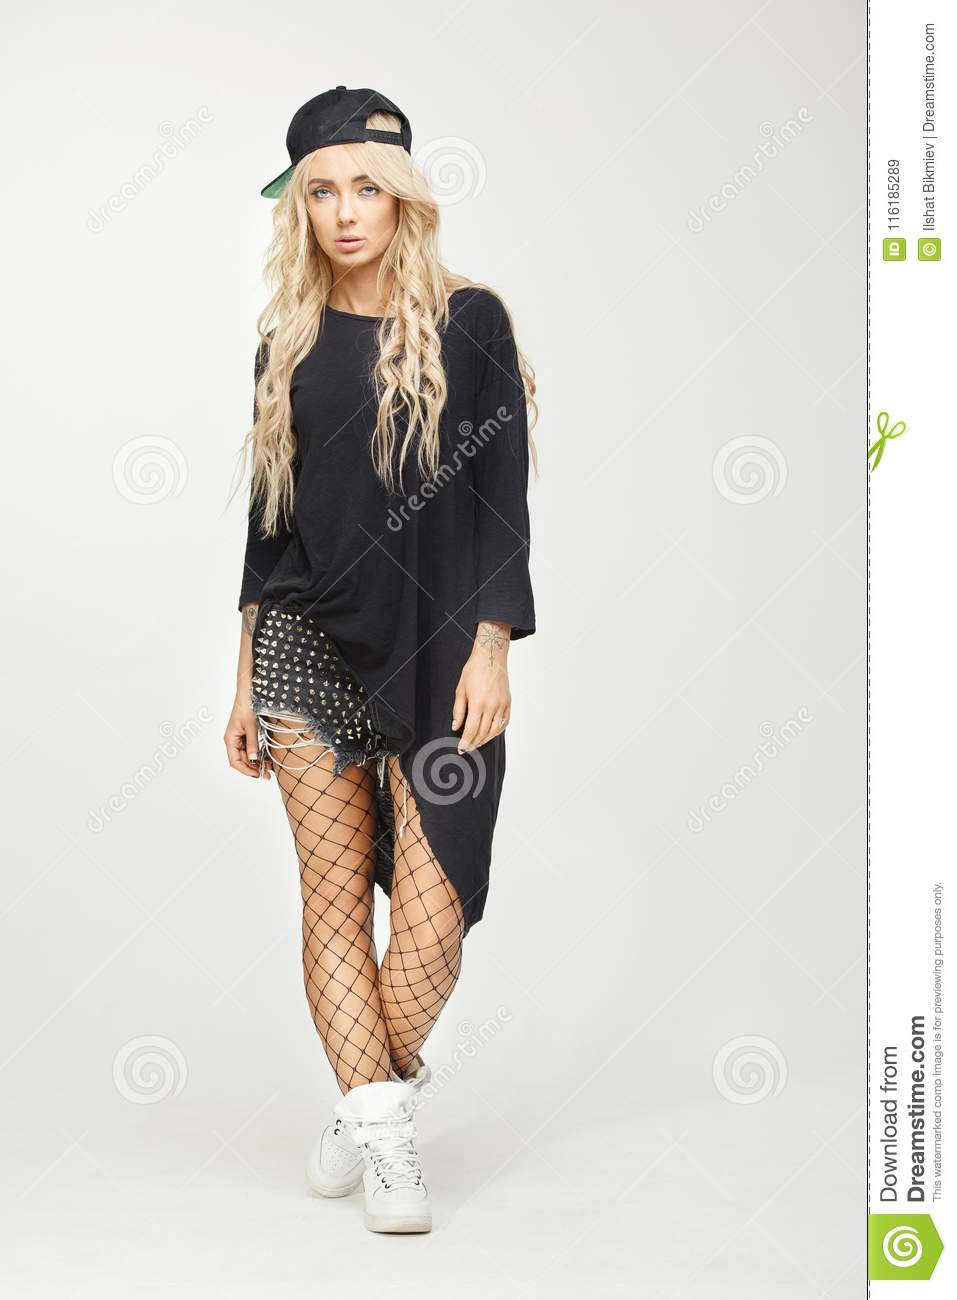 Vertical Portrait Of Swag Girl In Stylish Clothes With Cap